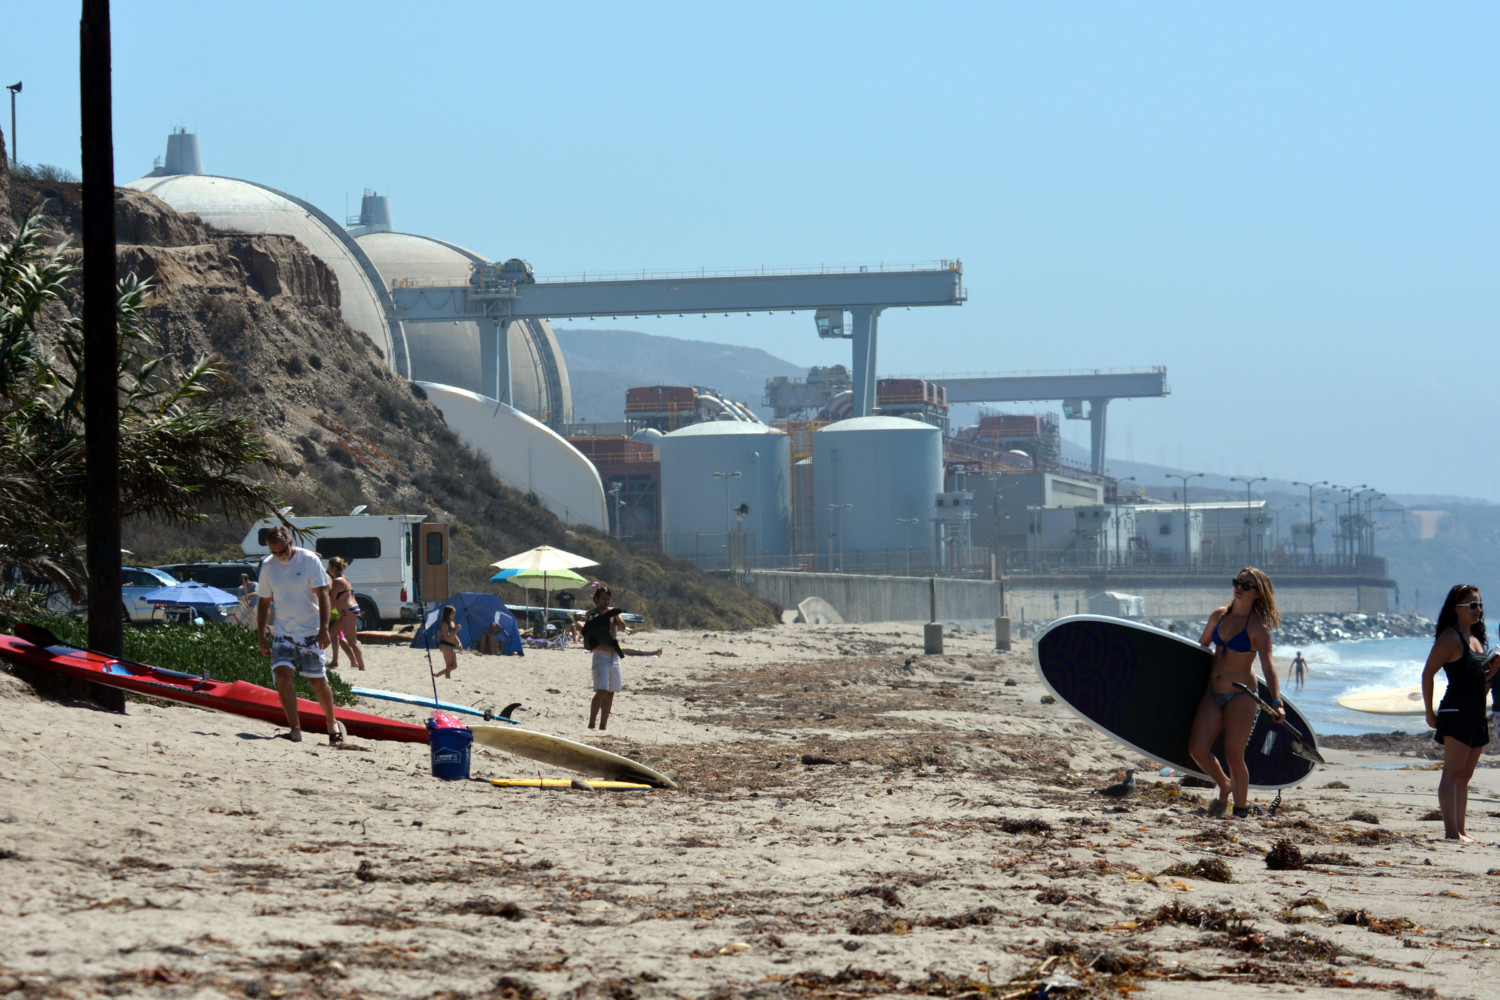 San Onofre: Nuclear waste storage legacy of closed plant